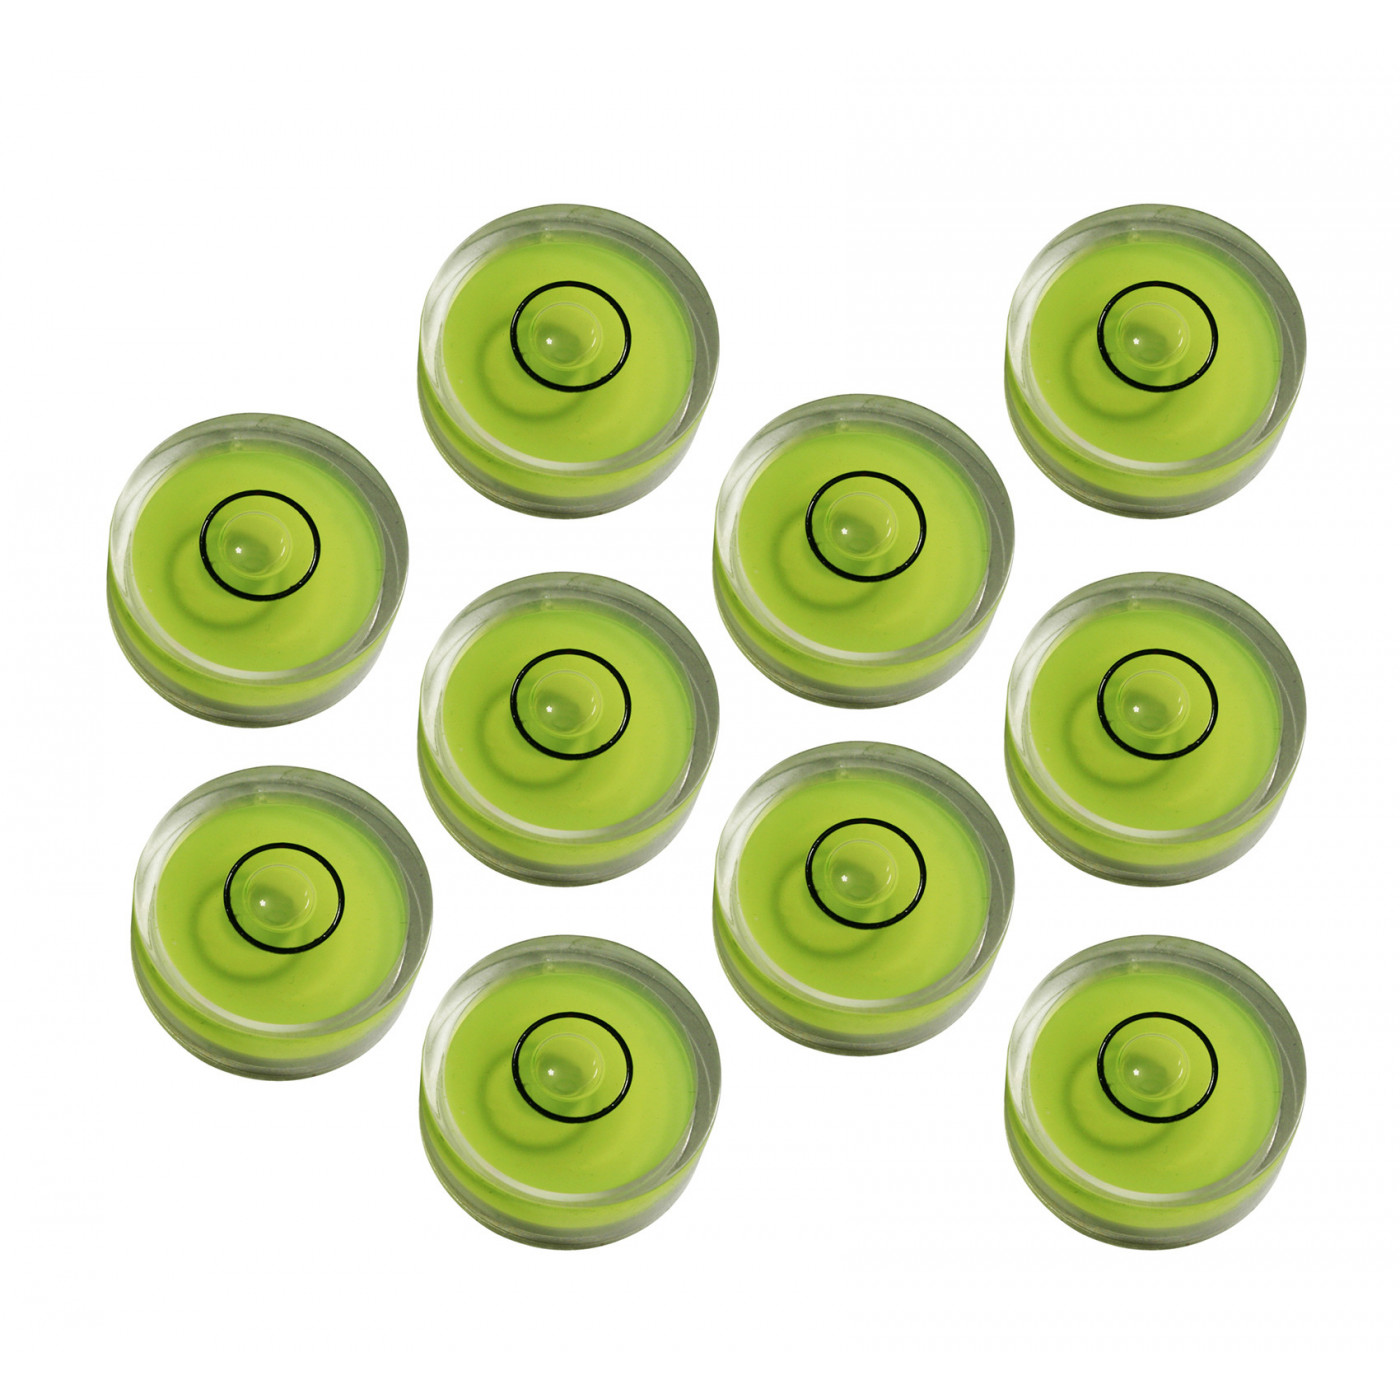 Set of 10 small round bubble levels size 4 (12x7 mm)